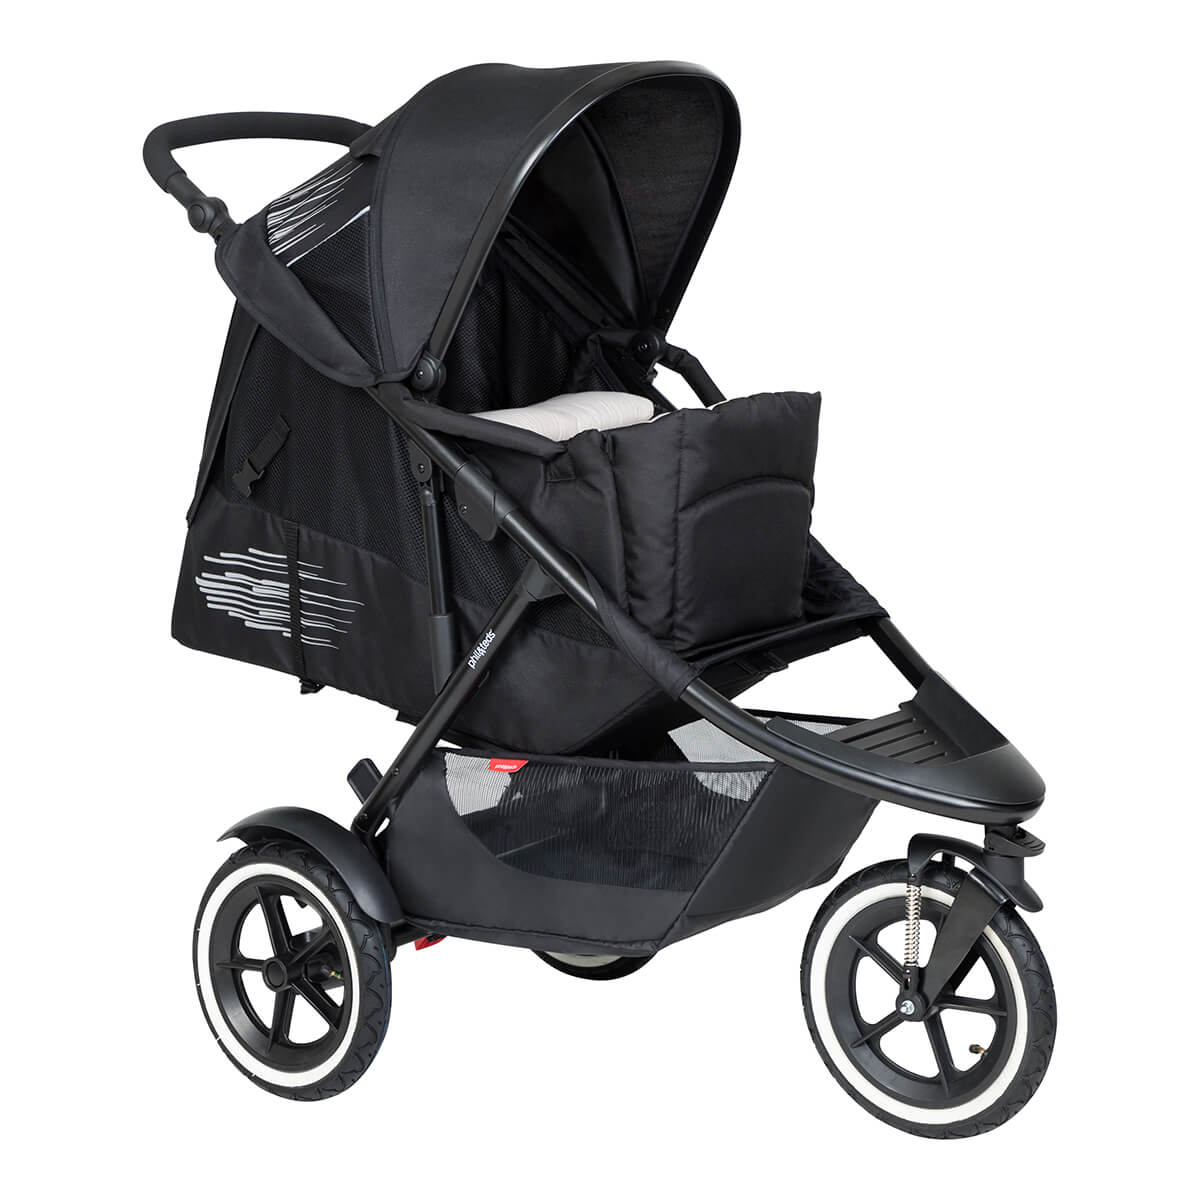 https://cdn.accentuate.io/4546158133353/19119322529897/philteds-sport-buggy-with-cocoon-full-recline-v1625778404088.jpg?1200x1200